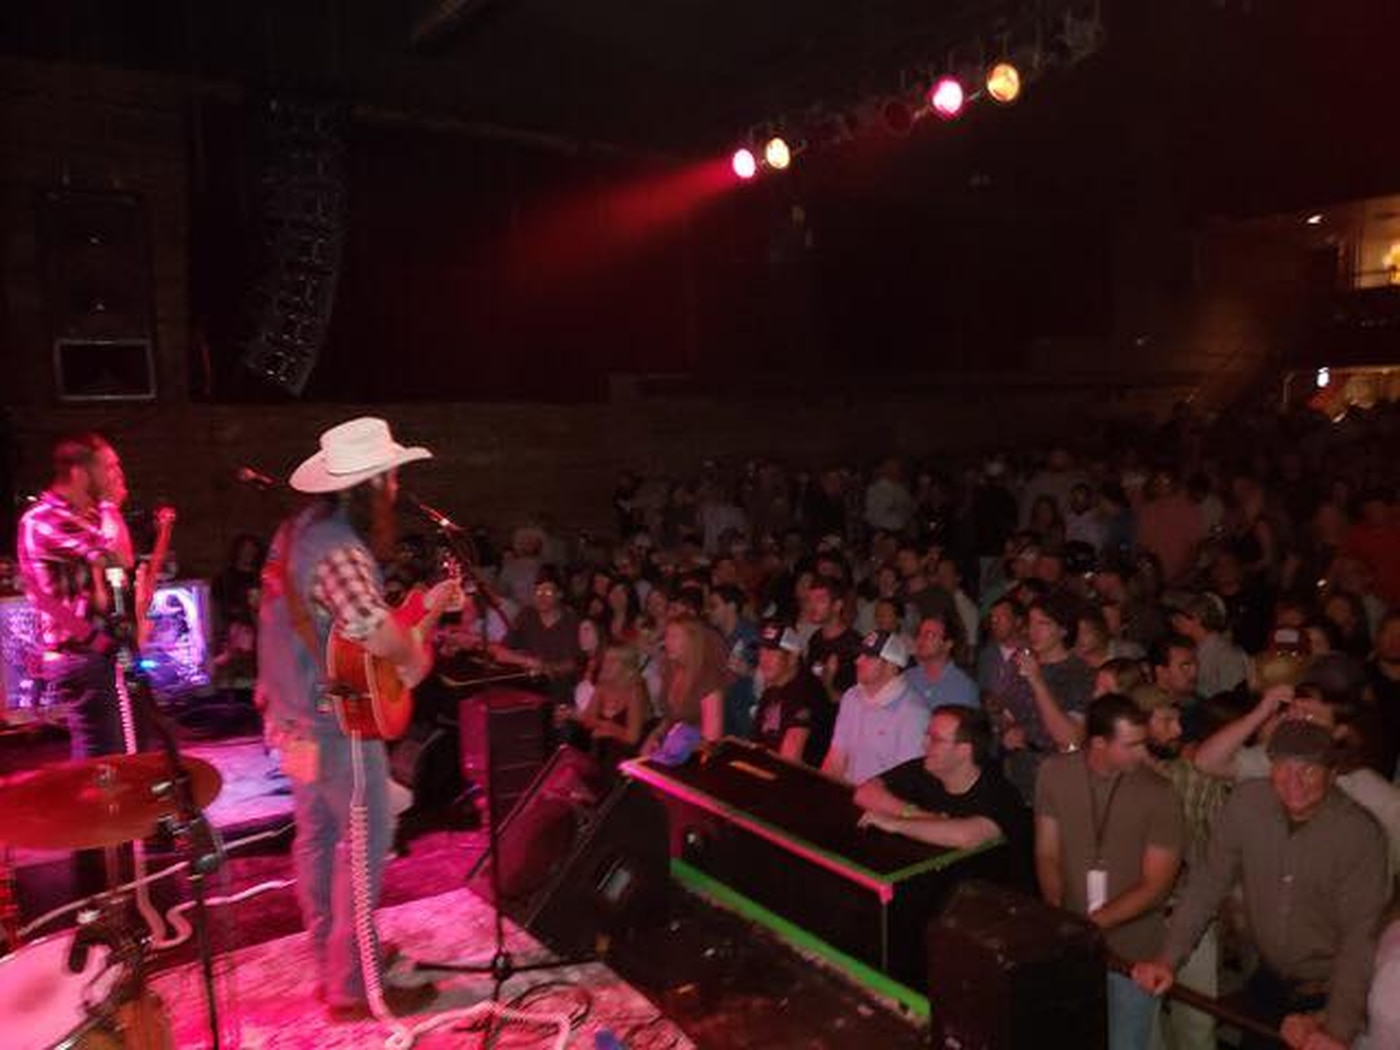 Dalton Wayne and the Warmadillos perform at one of Baton Rouge's largest music venues, The Varsity Theatre.